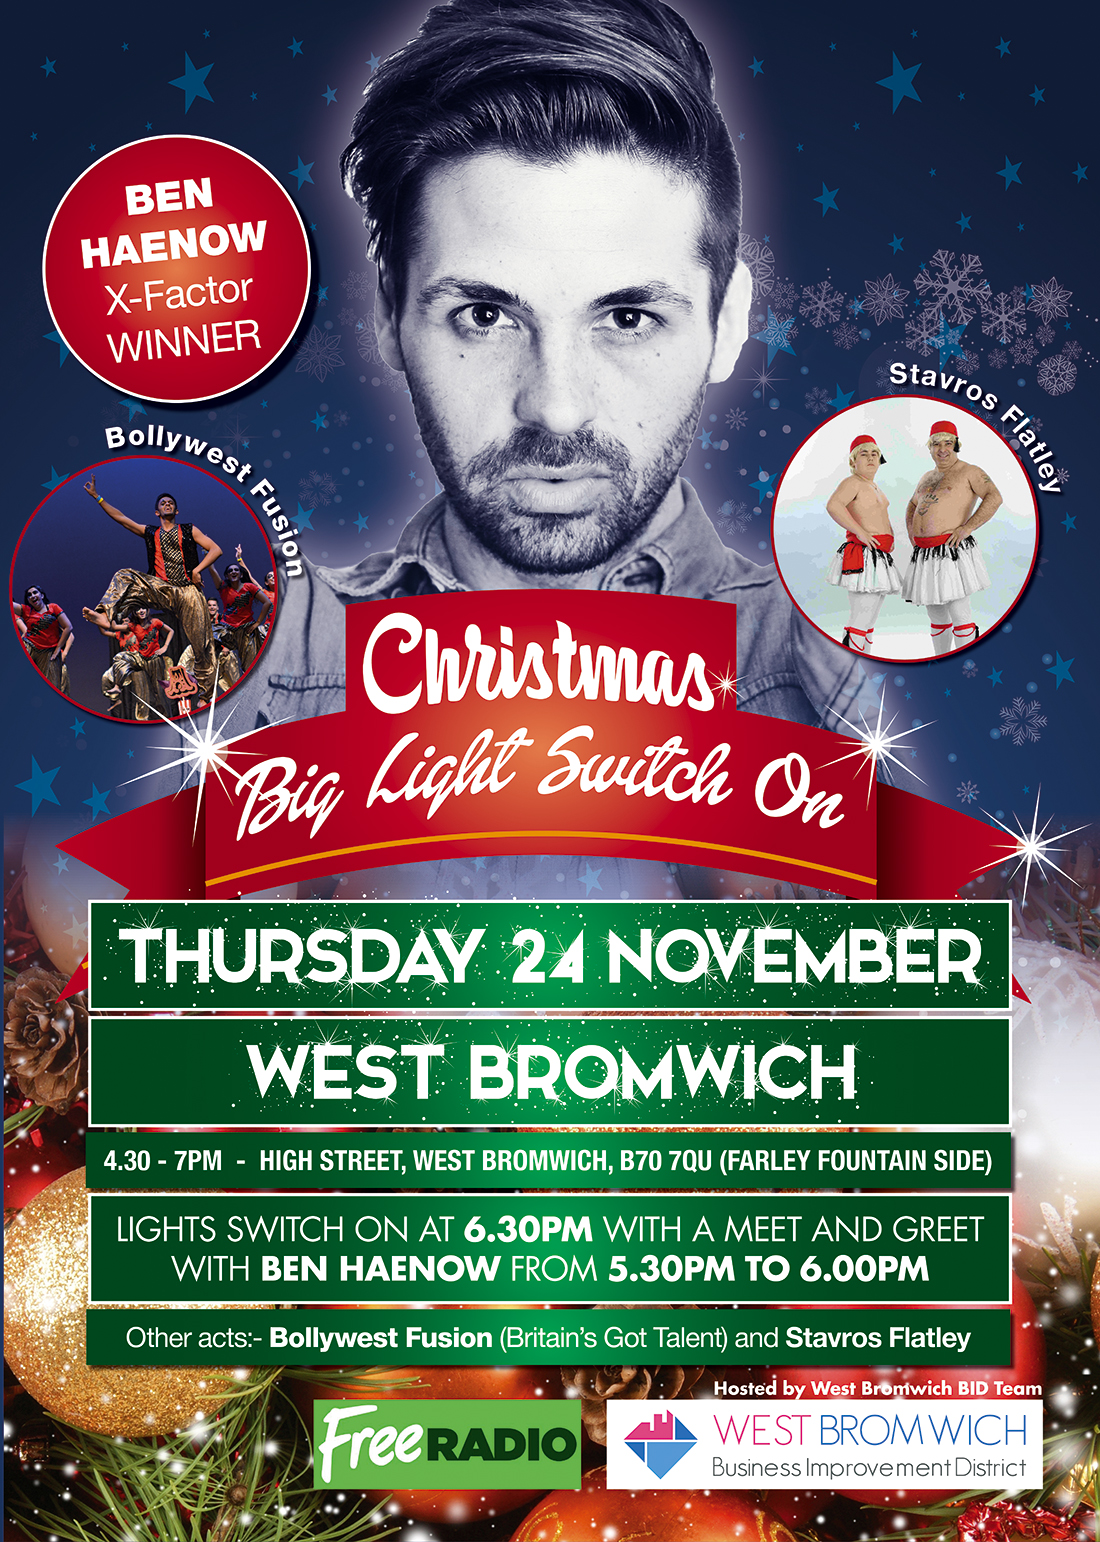 Christmas Light Switch on event tomorrow